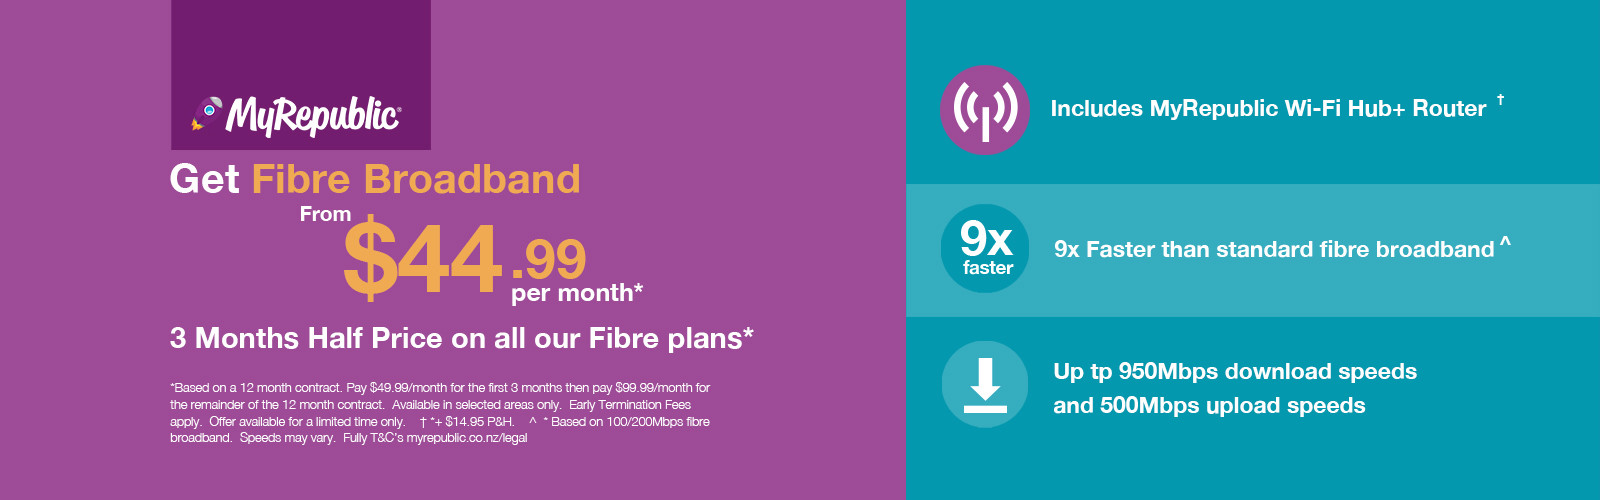 MyRepublic - 3 months HALF PRICE Fibre Offer